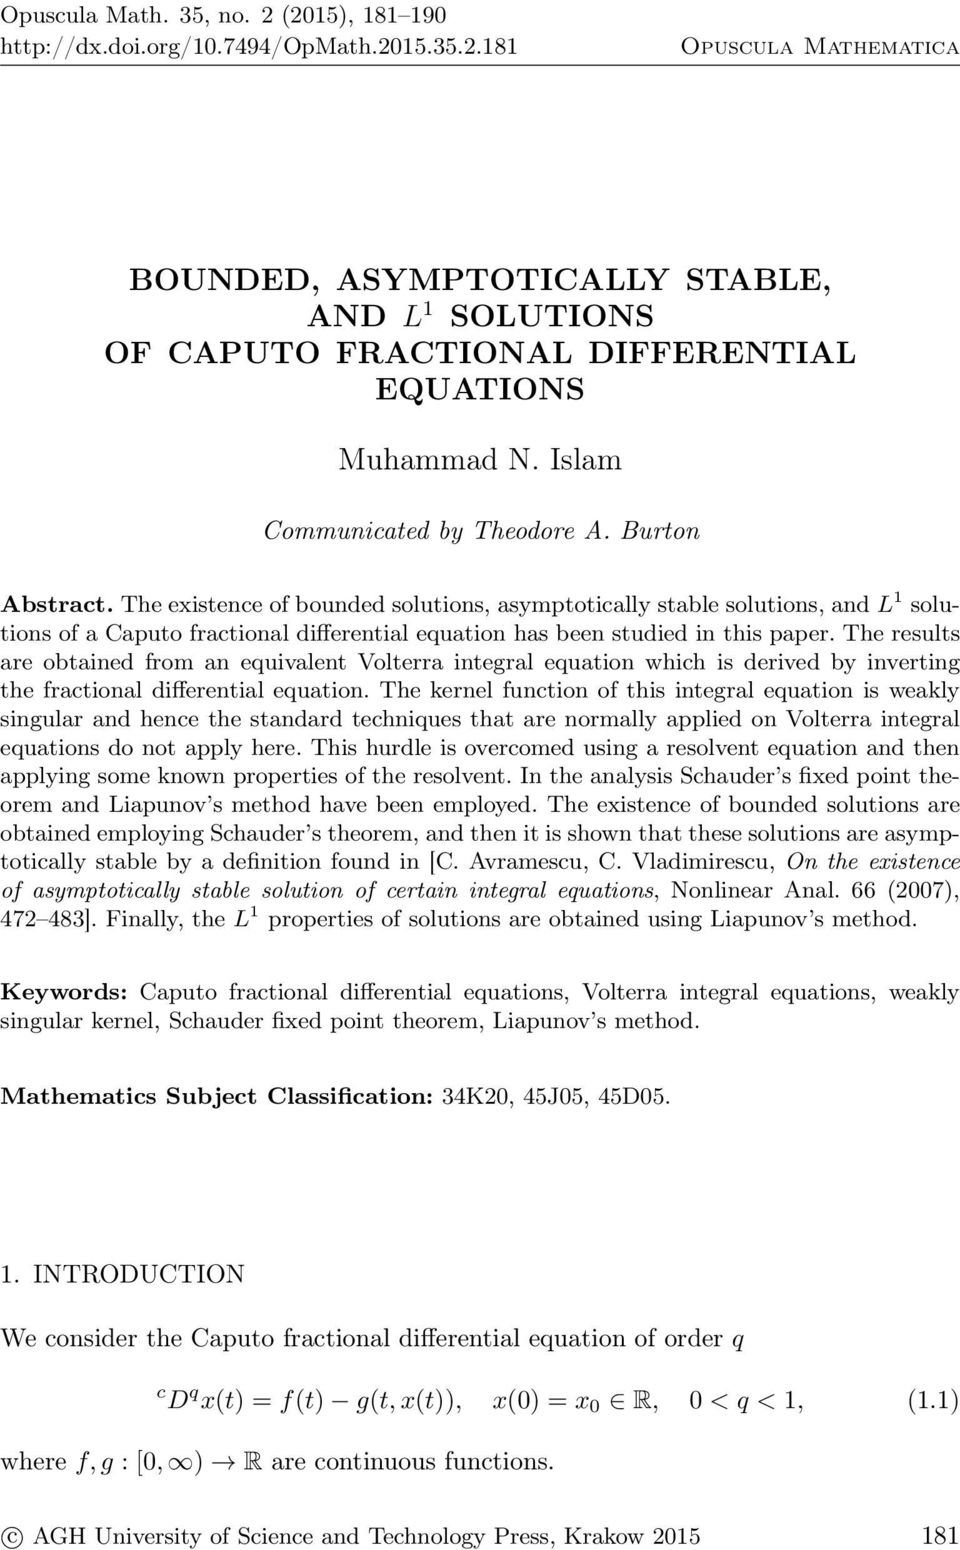 The existence of bounded solutions, asymptotically stable solutions, and L 1 solutions of a Caputo fractional differential equation has been studied in this paper.